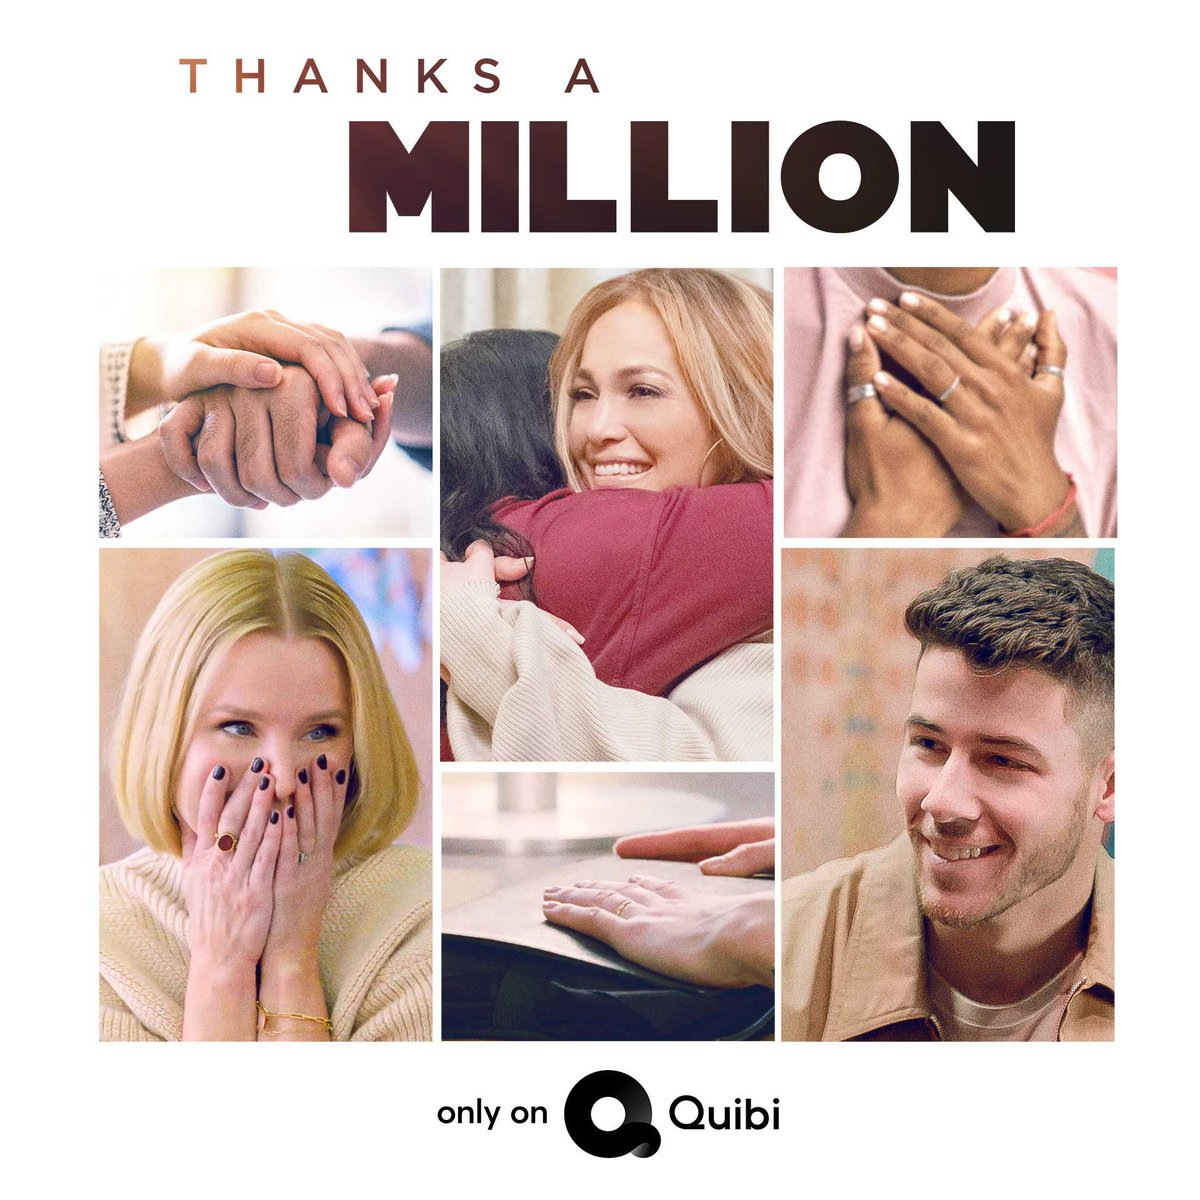 It's here!  Don't miss me in the first episode of #ThanksAMillion, available now on @quibi. I'm so proud of this show. https://link.quibi.com/watchnow @egt239 #NuyoricanProductions @B17Entpic.twitter.com/f4XYrl1bZd